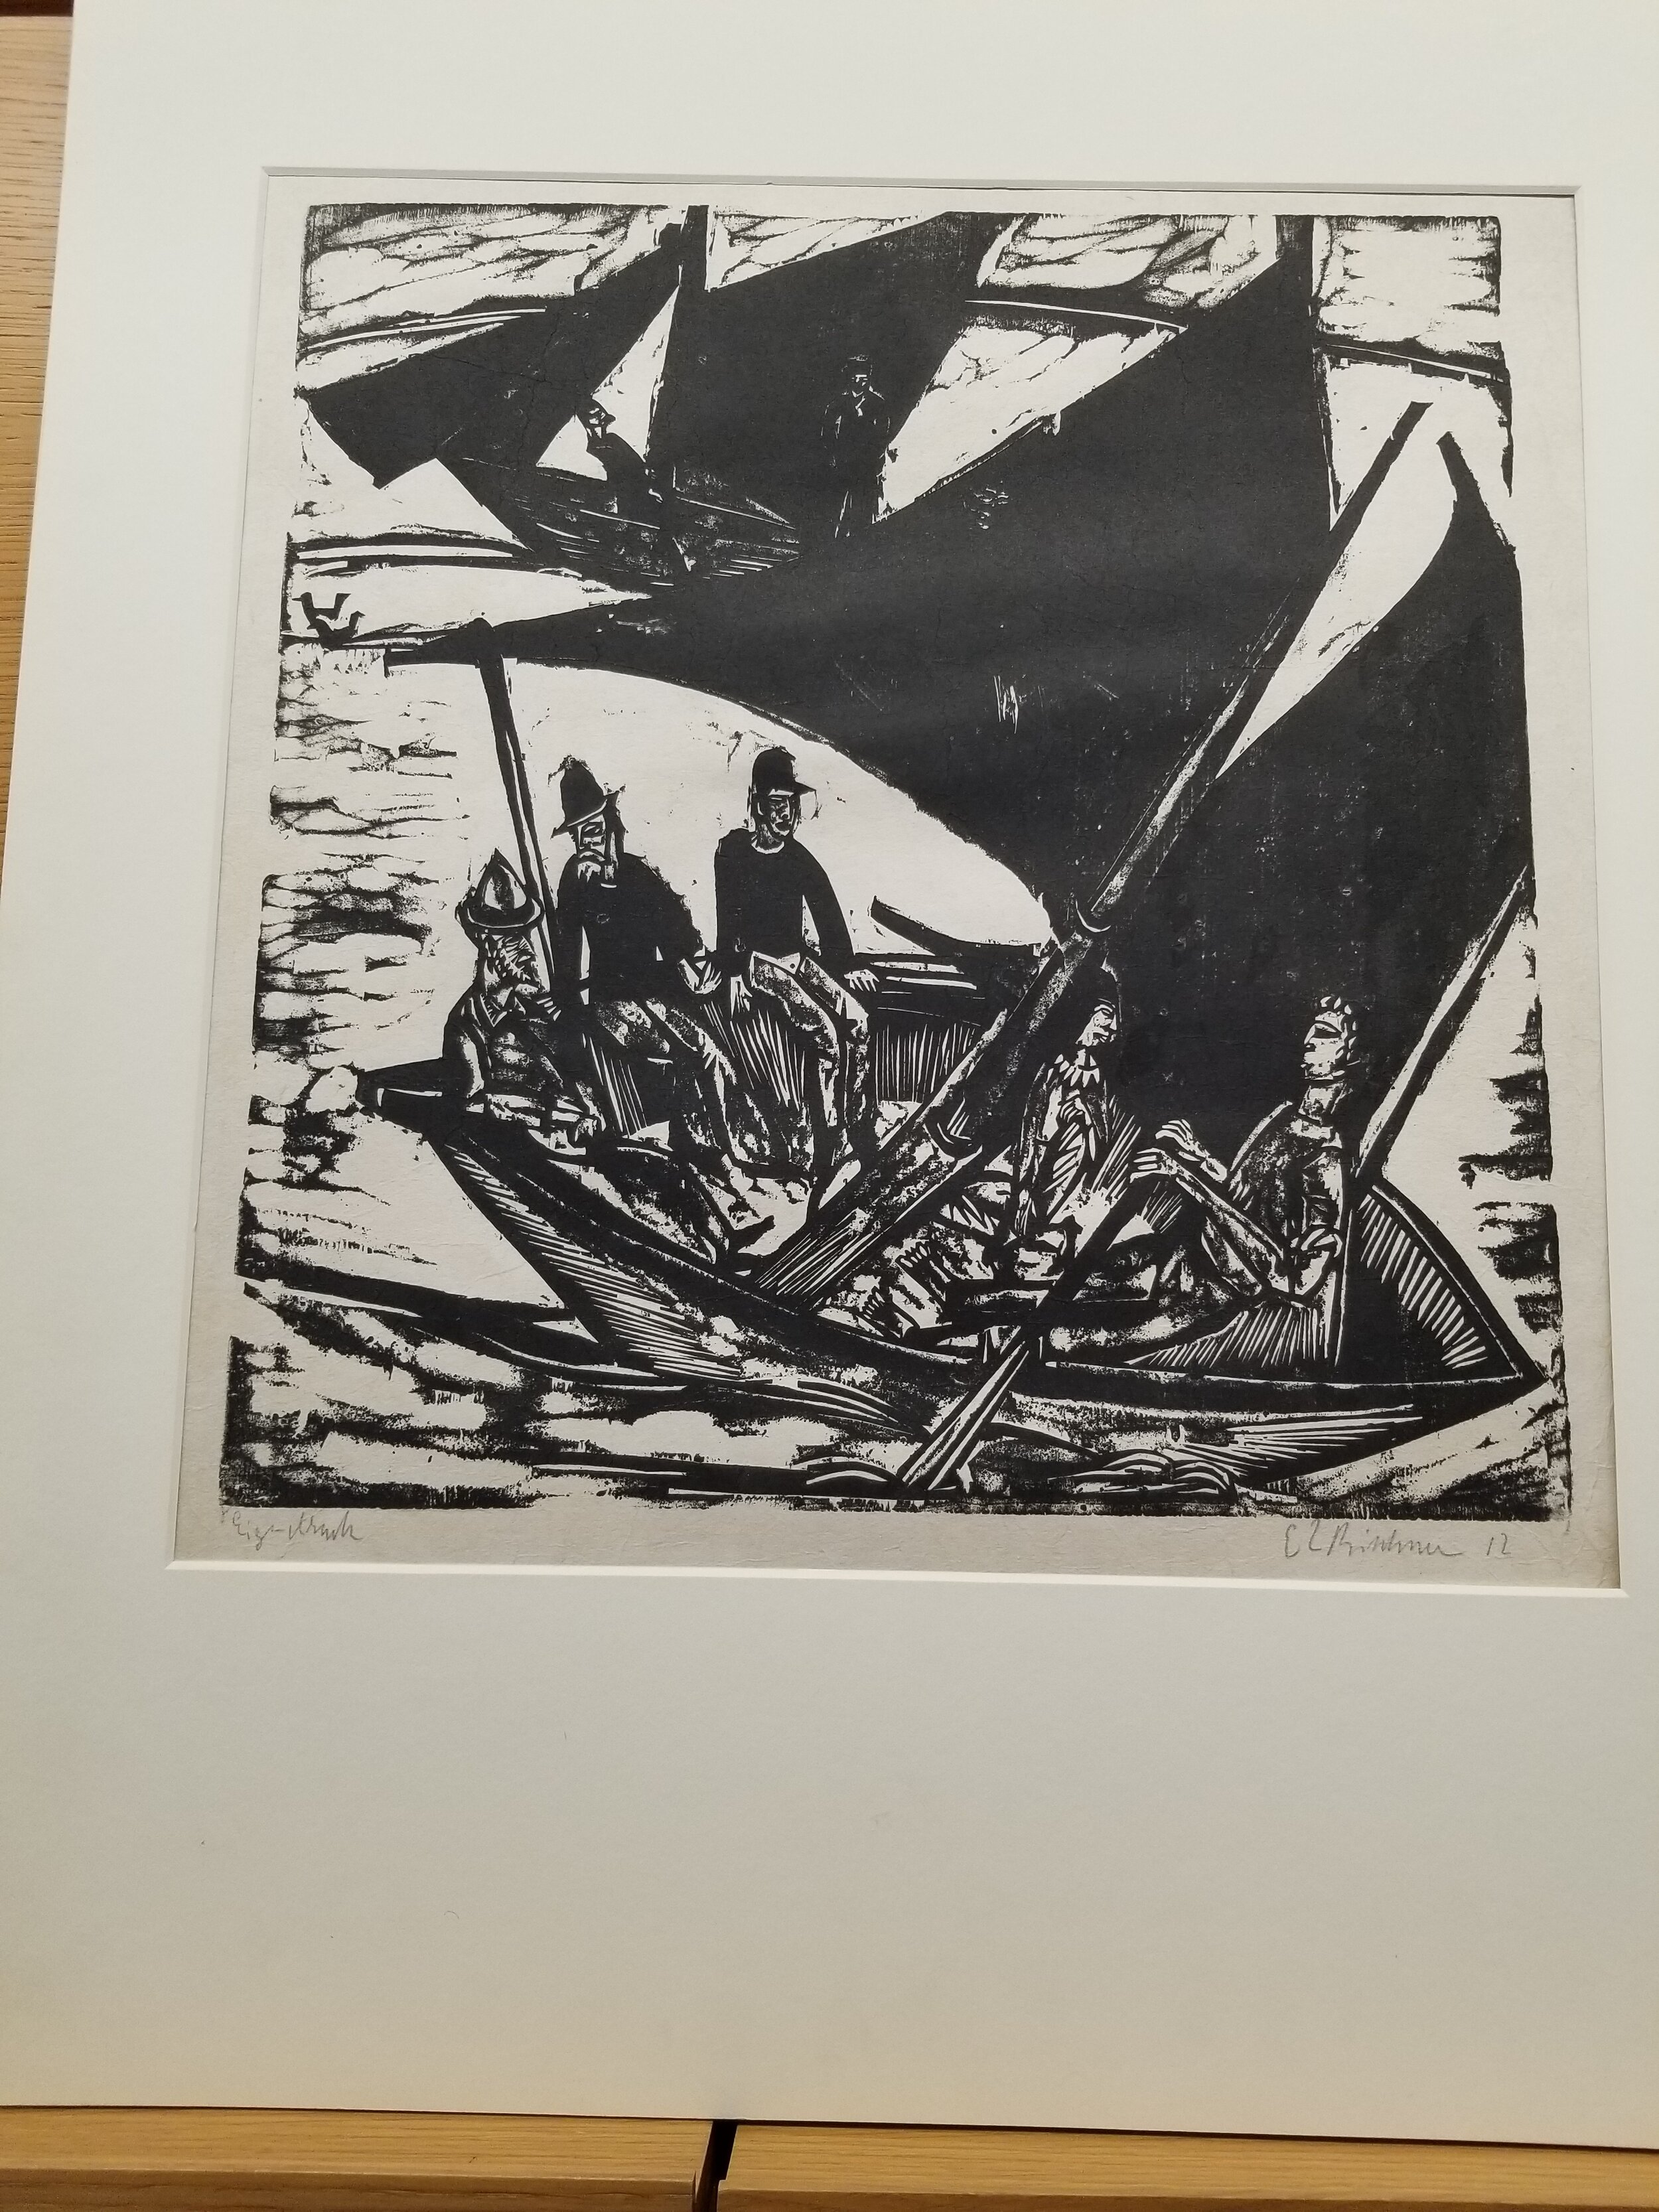 This print changed my life. This is E.L. Kirchner's Sailboats at Fehmarn and it opened me up to the German Expressionists.